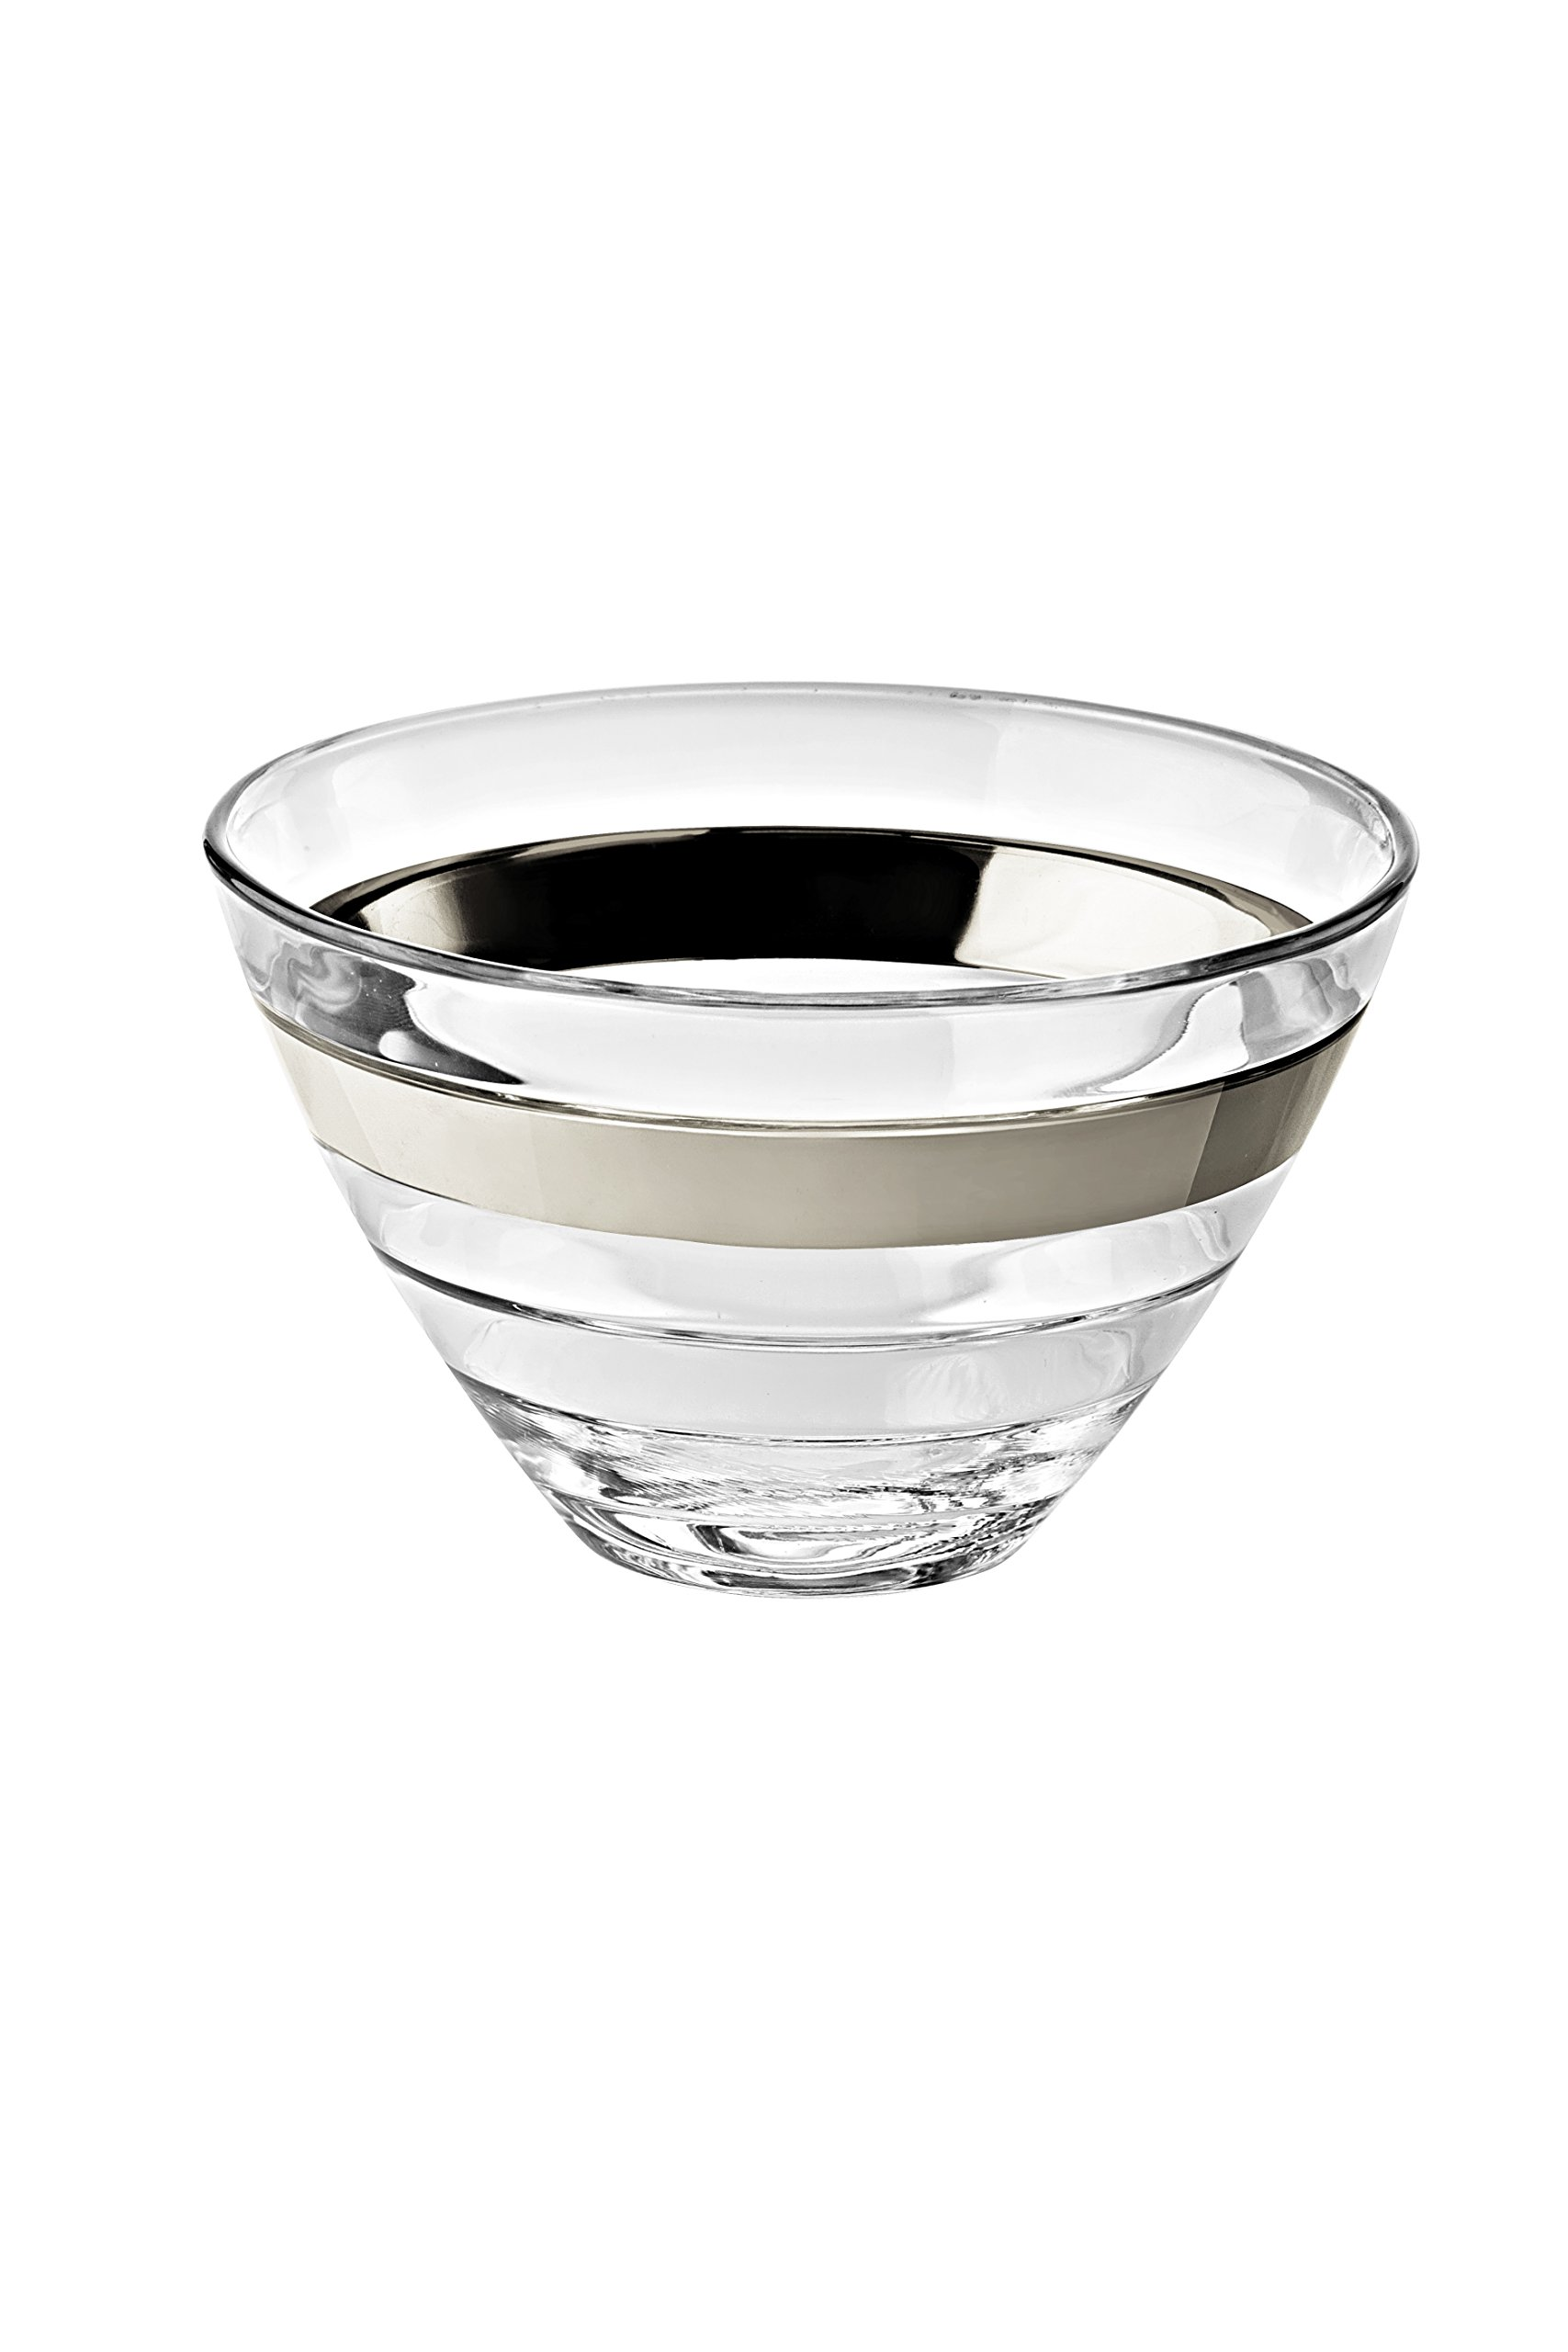 Majestic Gifts European Glass Individual Bowls with Platinum Band (Set of 6), Clear